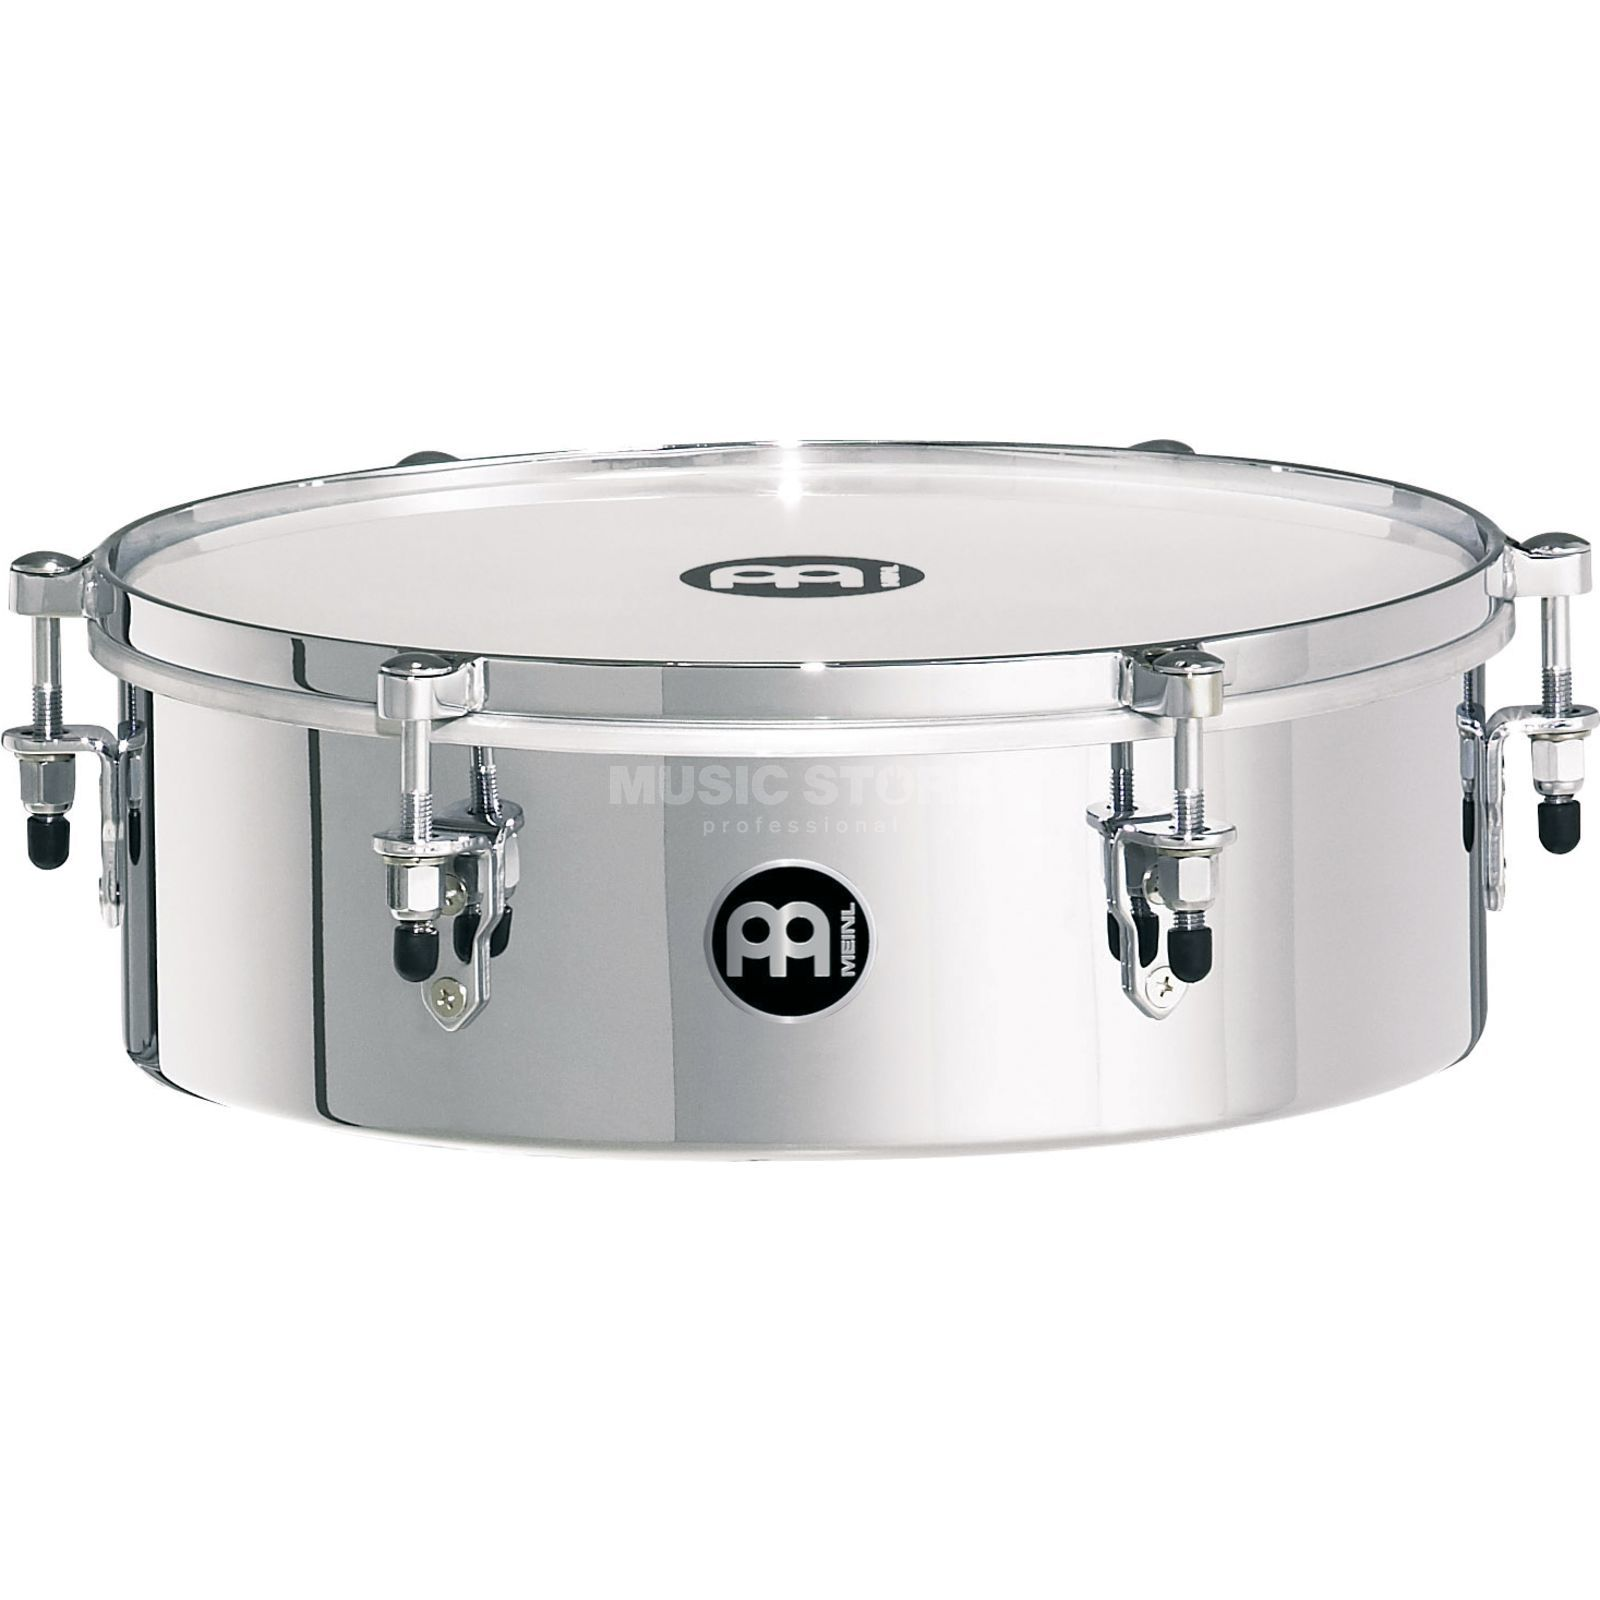 "Meinl MDT13CH Drummer Timbale 13"" Chrome Finish Изображение товара"